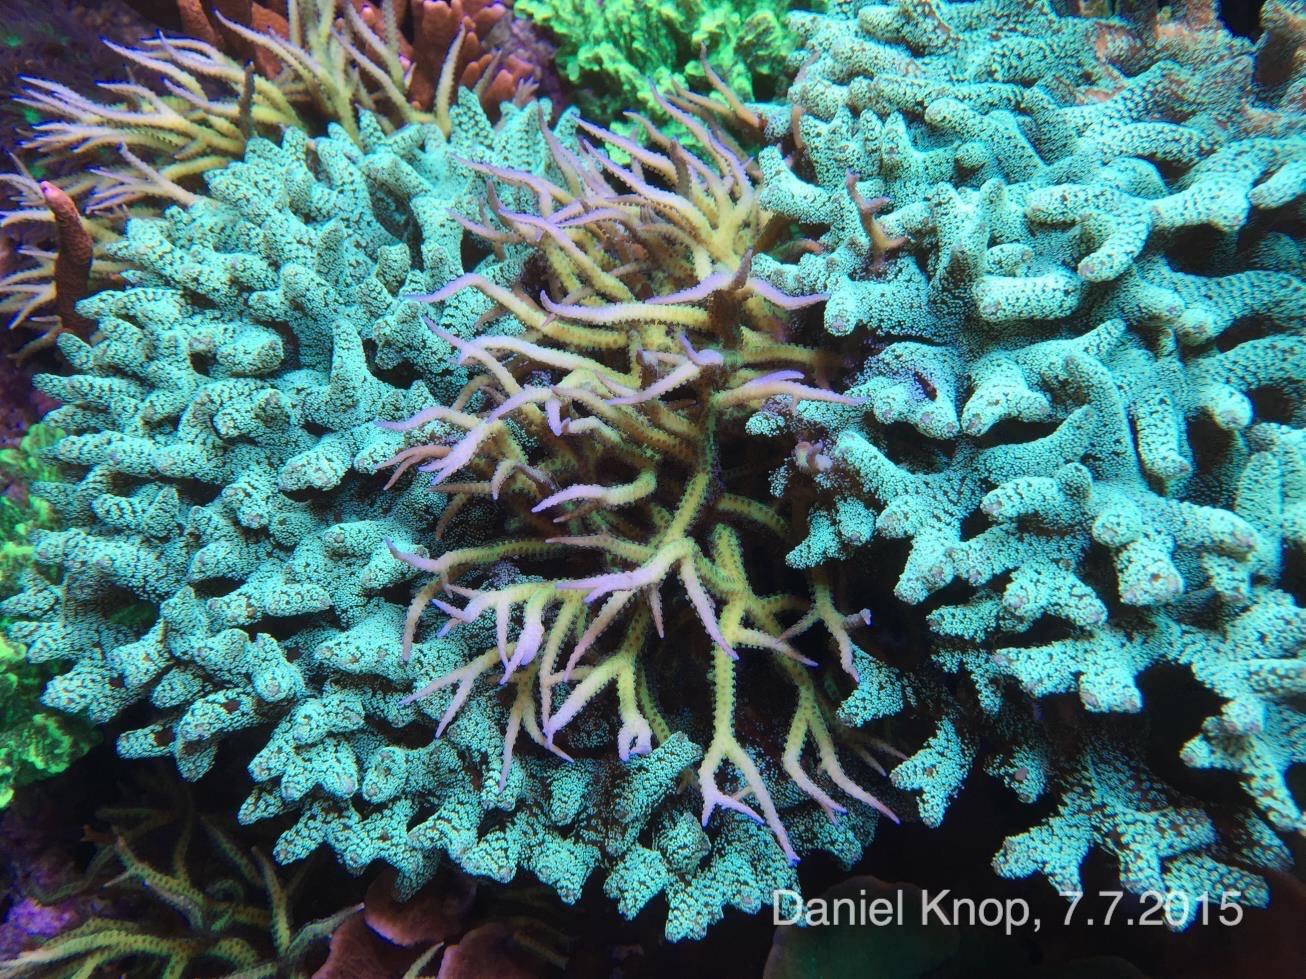 Using contrasting corals in close proximity creates visual interest and appeal - here a Ponape Birdsnest resides between two Green Birdsnest colonies.